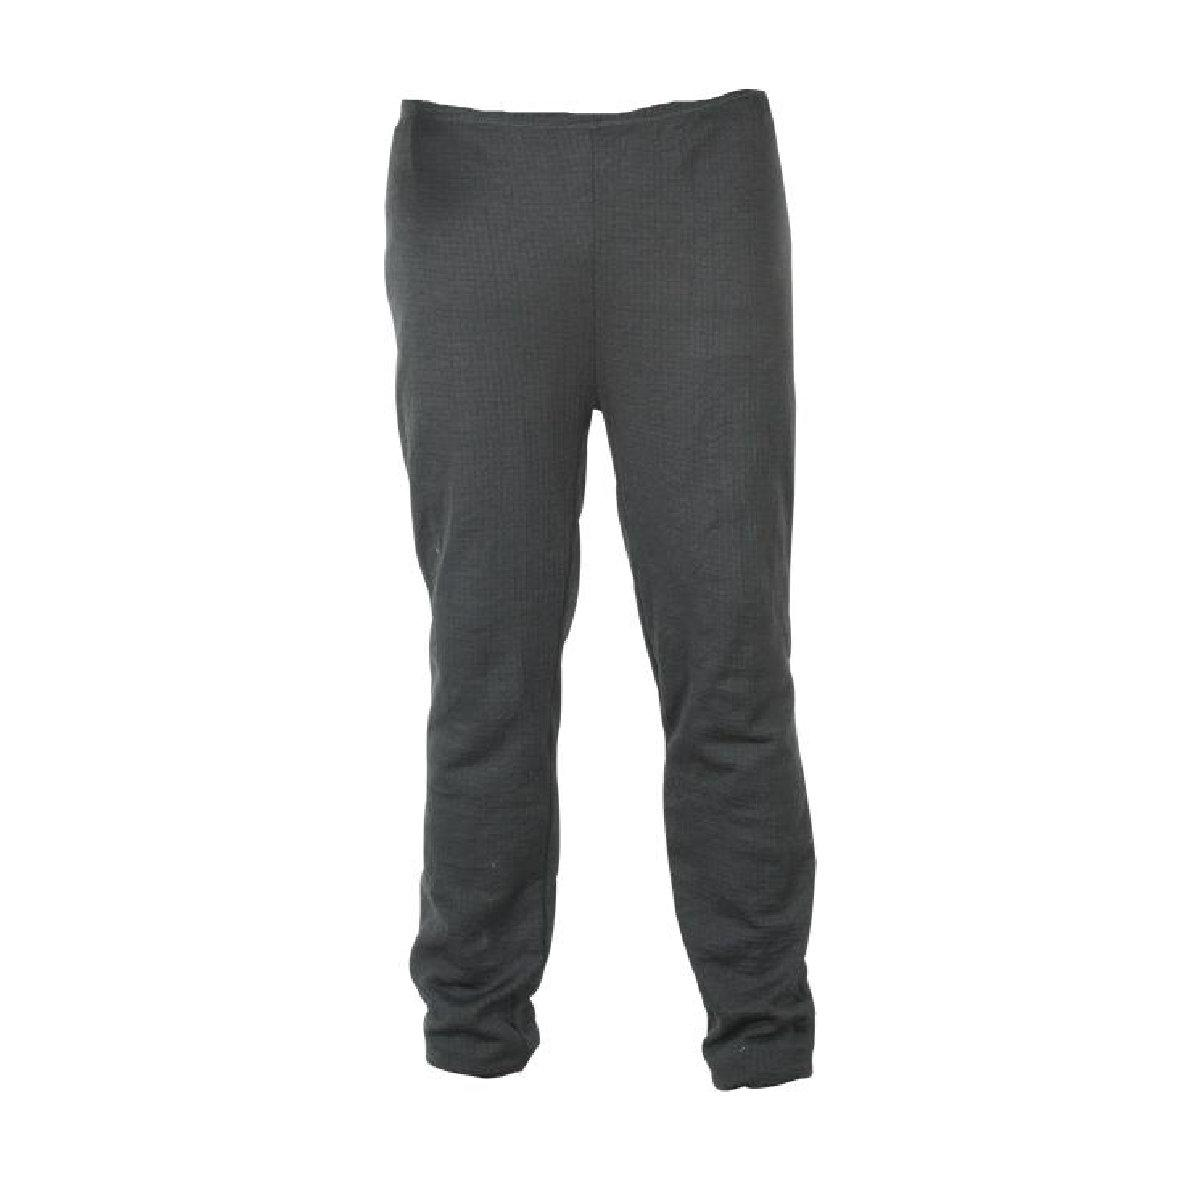 Voodoo Tactical Dual Action Thermal Long Underwear, Bottoms, Black by Voodoo Tactical